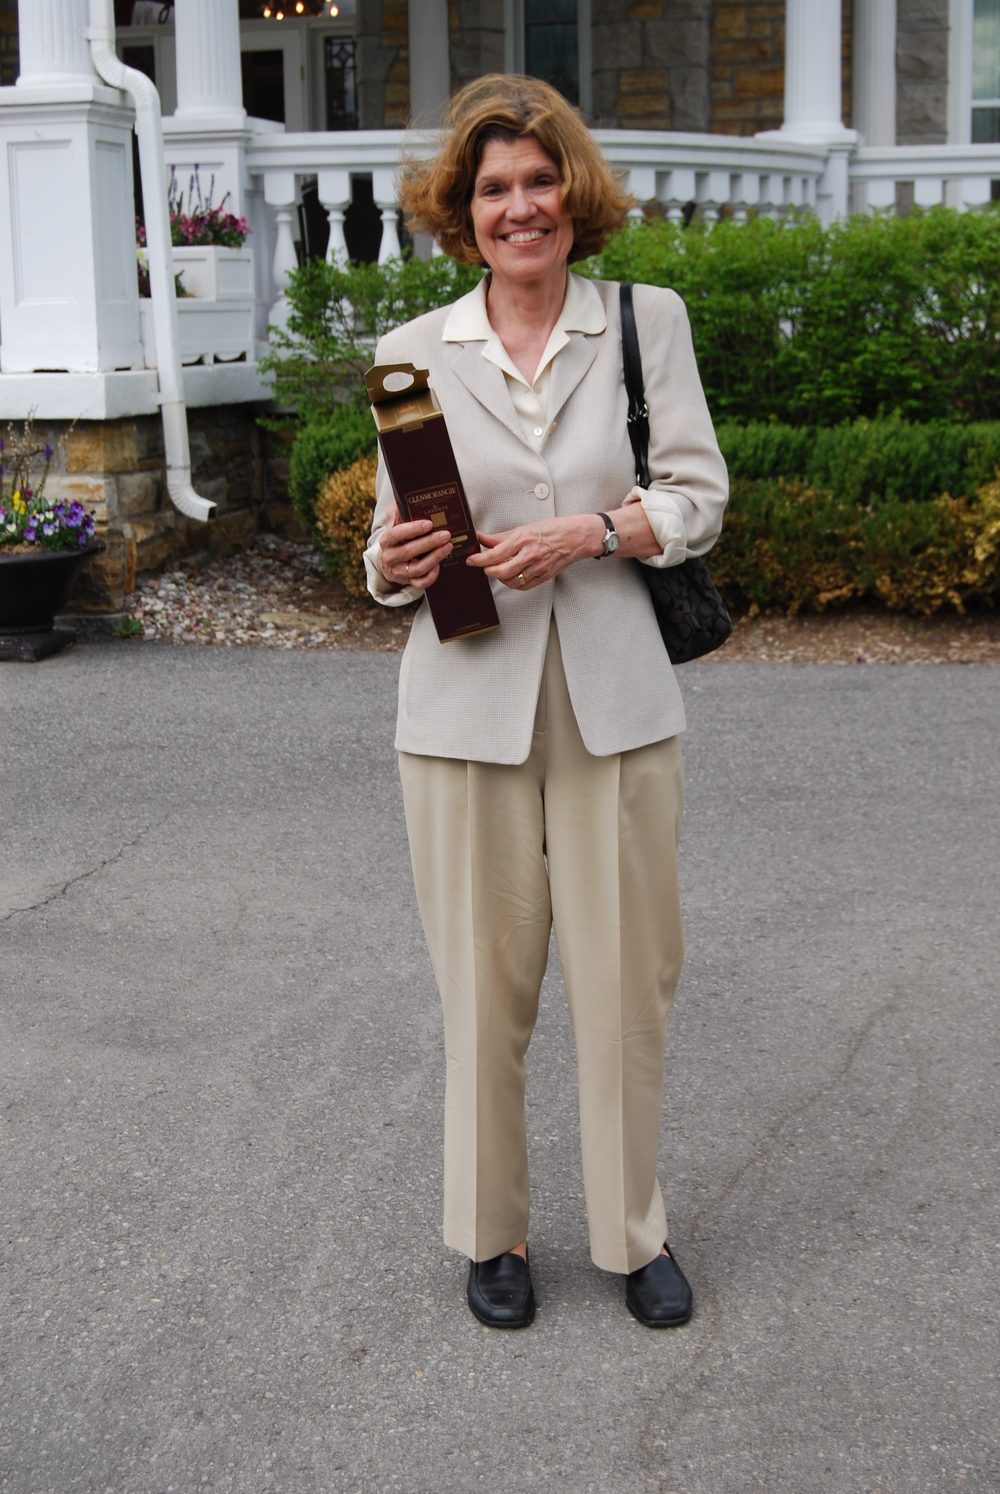 Lynne Olson outside the Residence of the American Ambassador - II